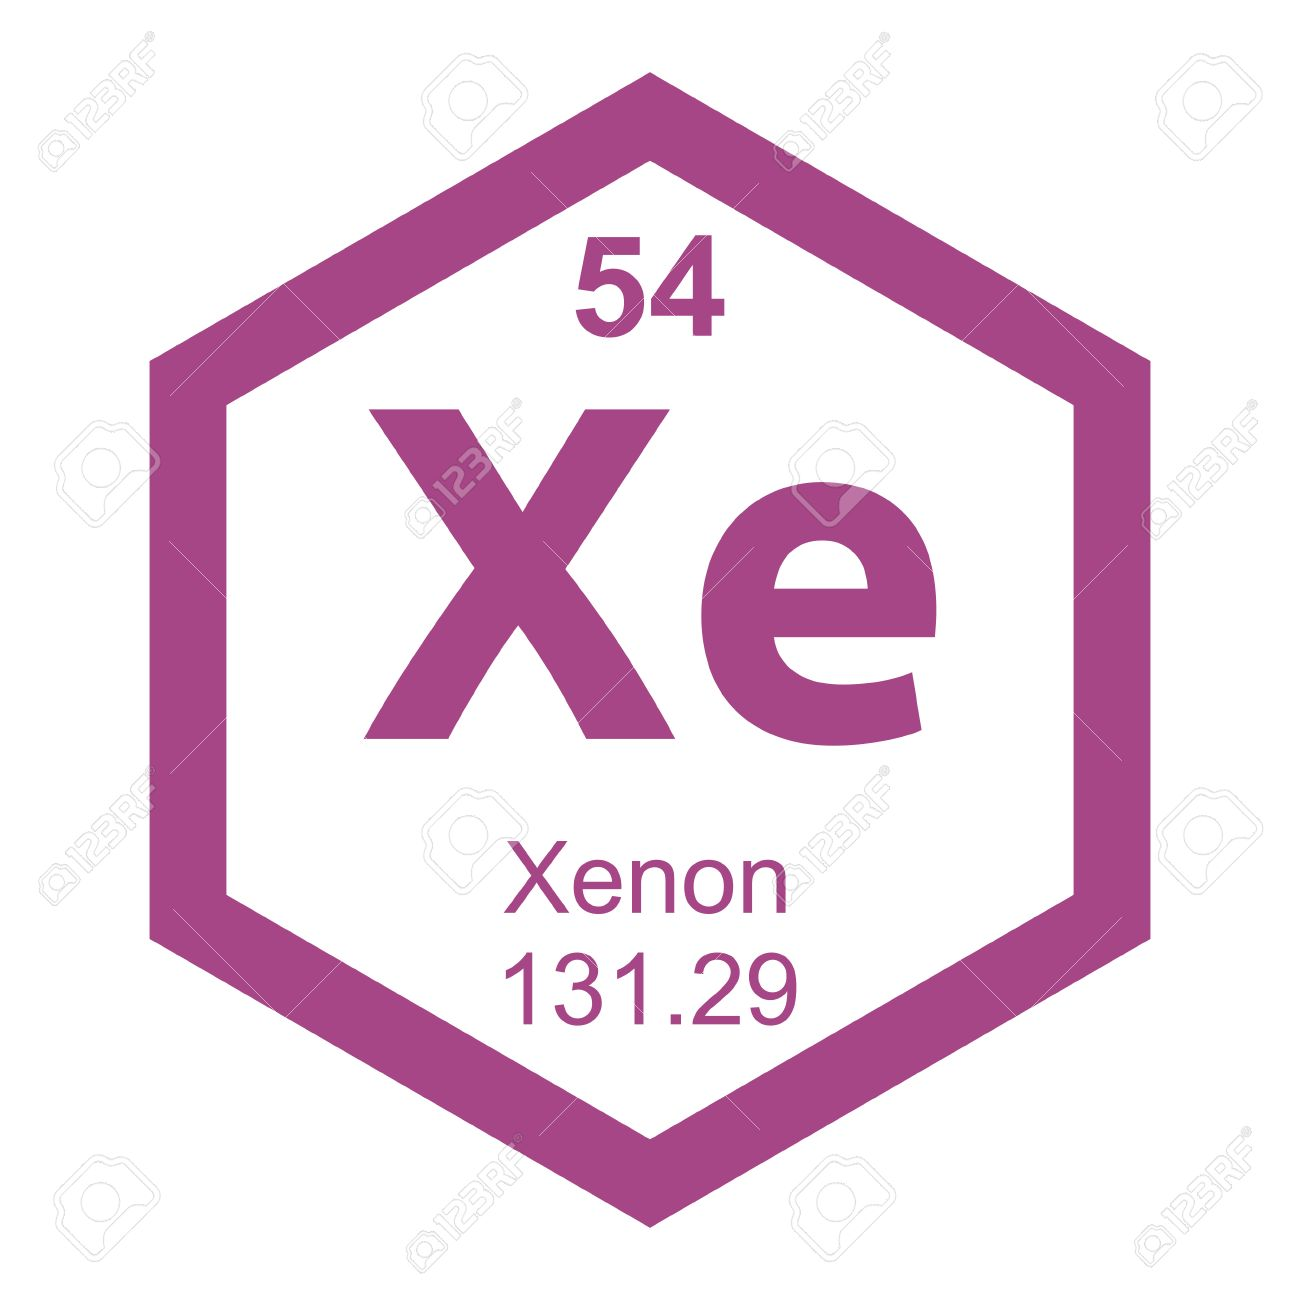 Periodic table xenon royalty free cliparts vectors and stock periodic table xenon stock vector 41243812 urtaz Image collections